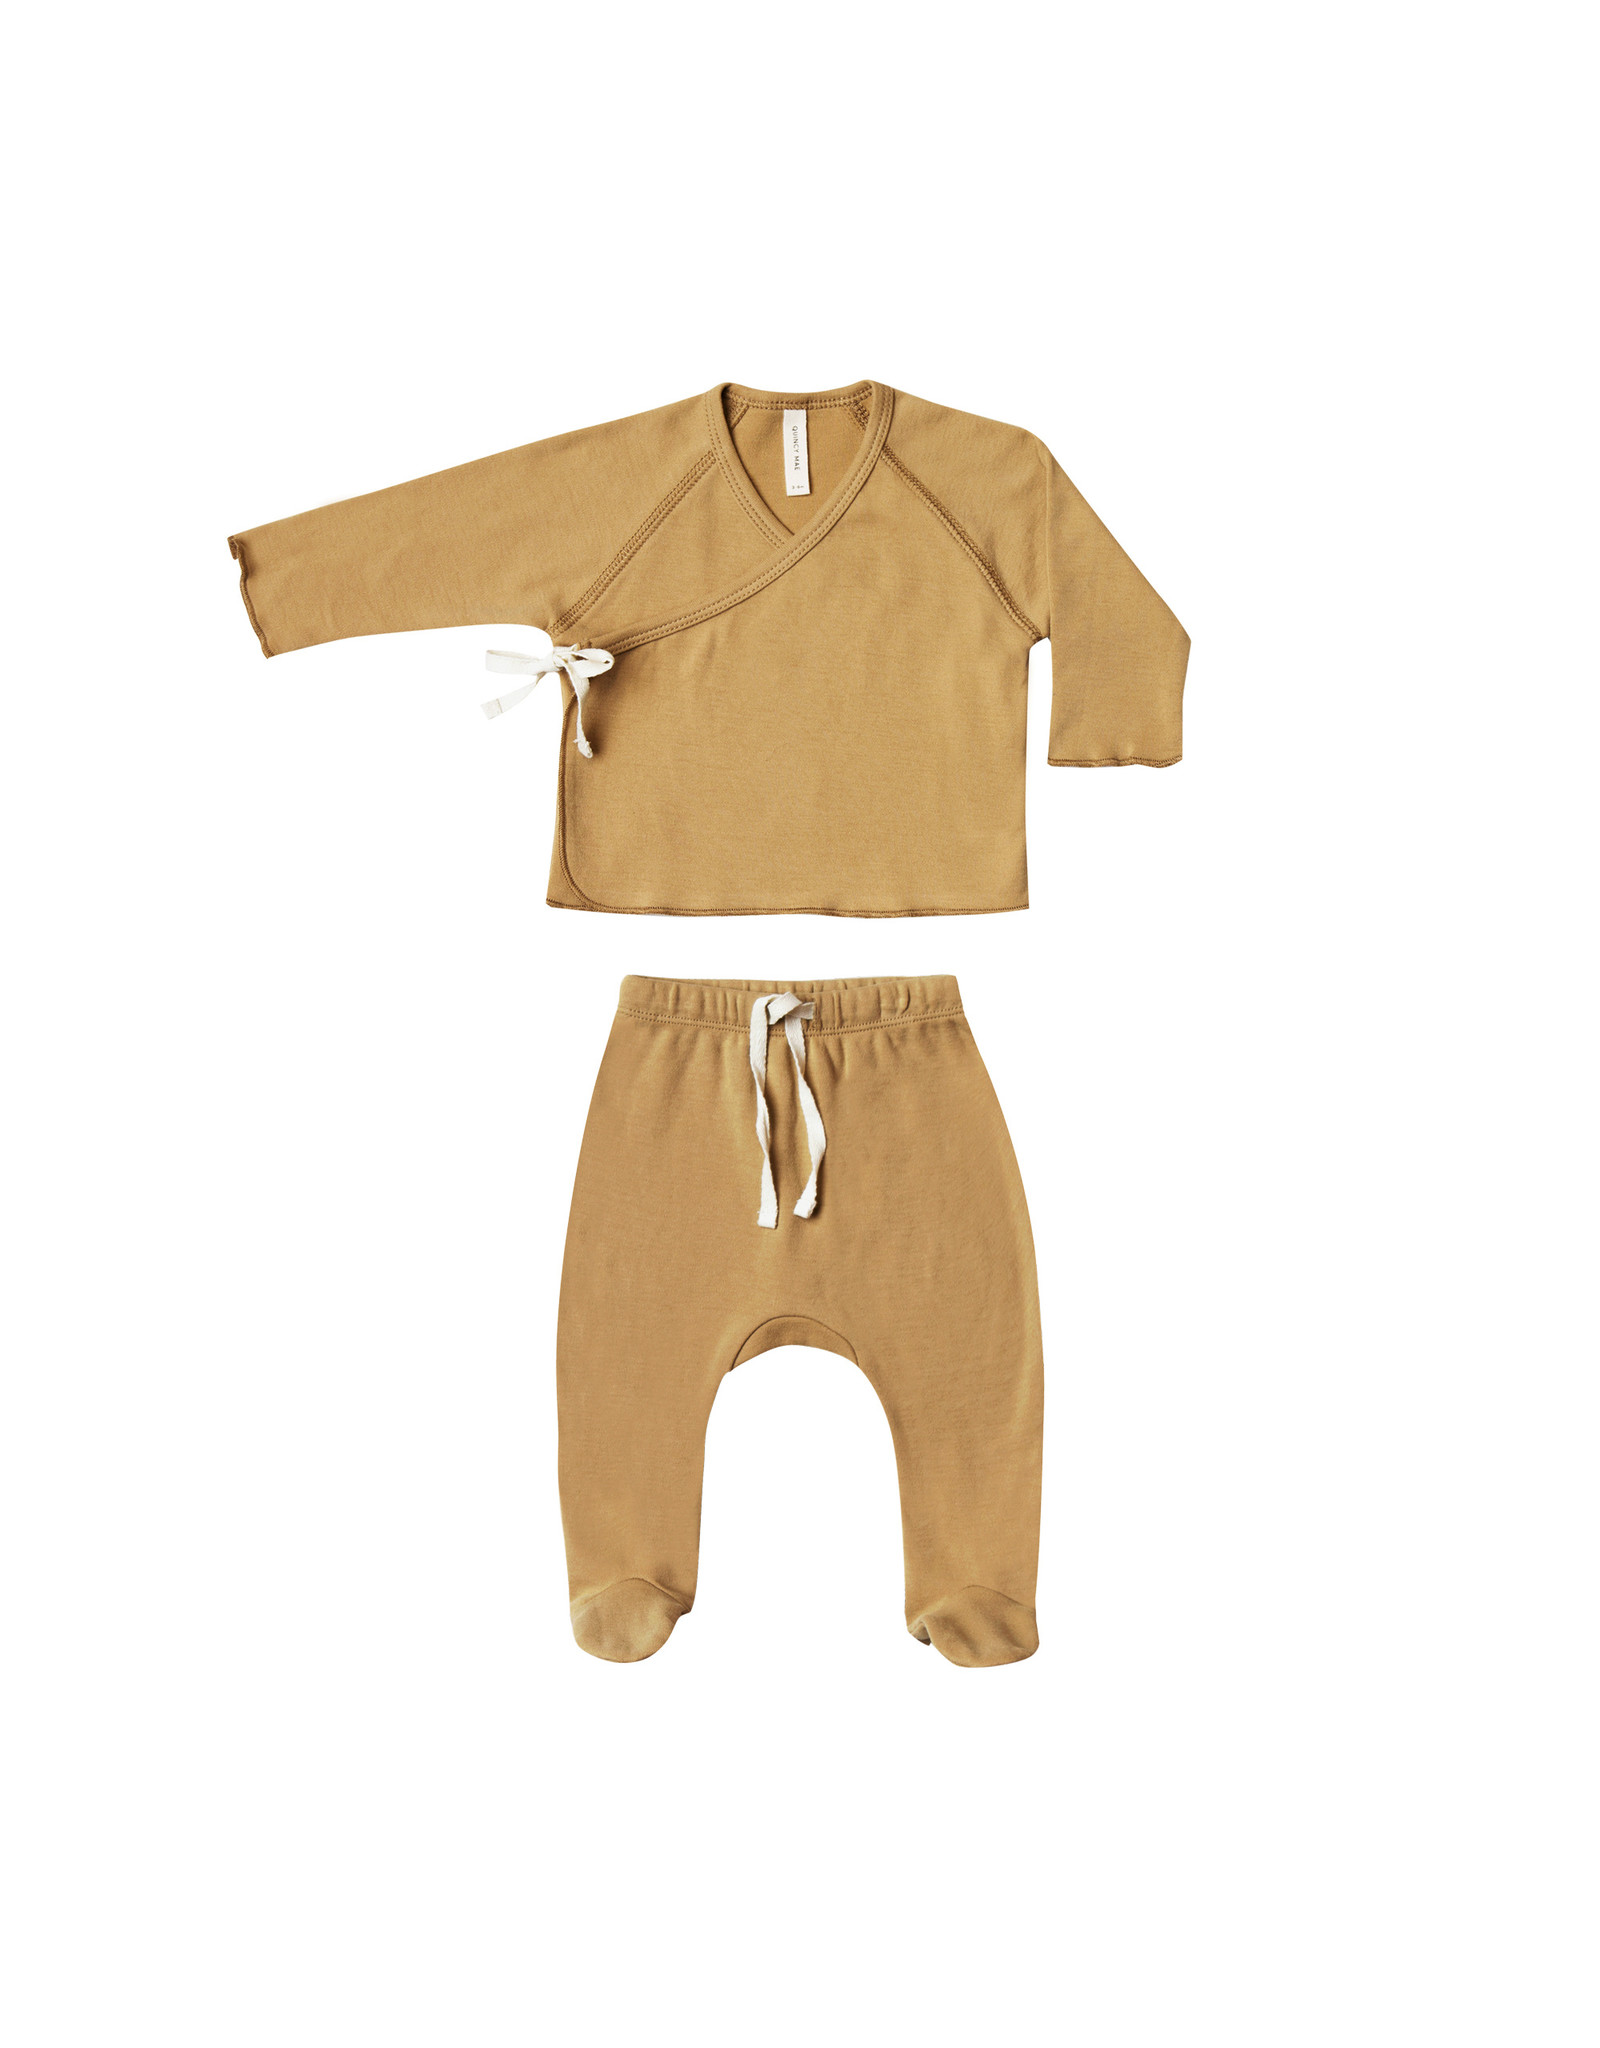 Quincy Mae Infant Organic Kimono Top footed Pant Set